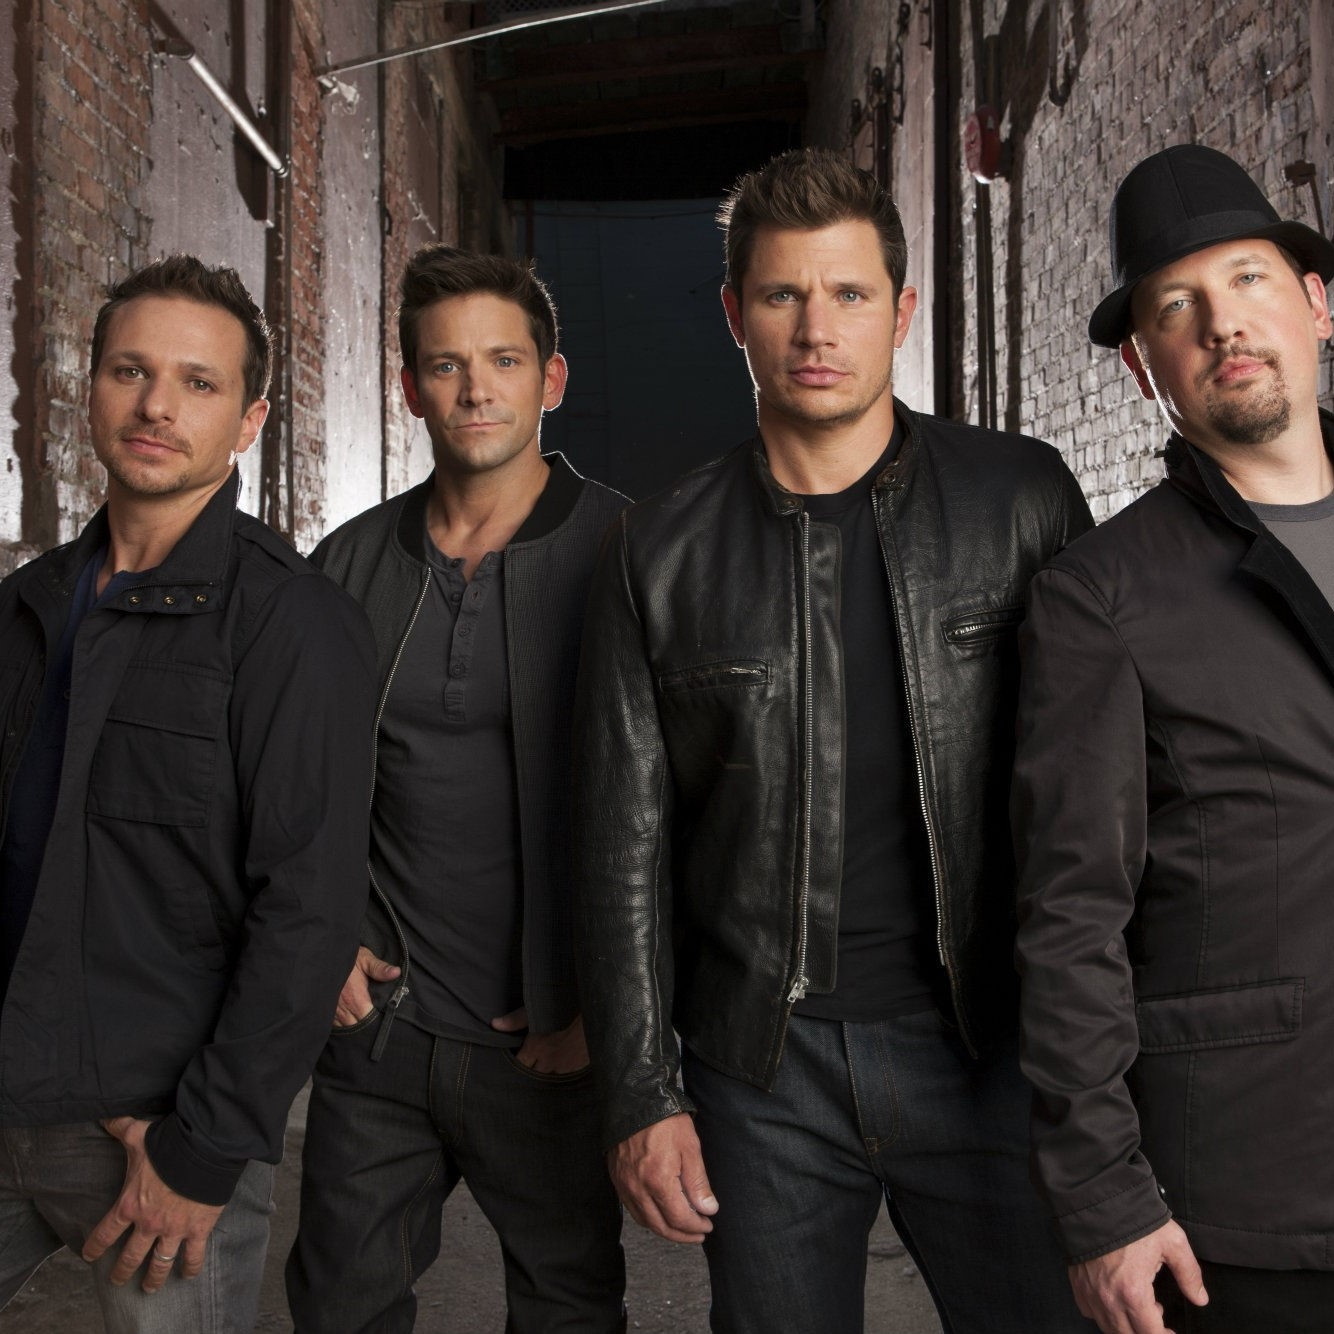 98 Degrees via TAG Collective for use by 360 Magazine